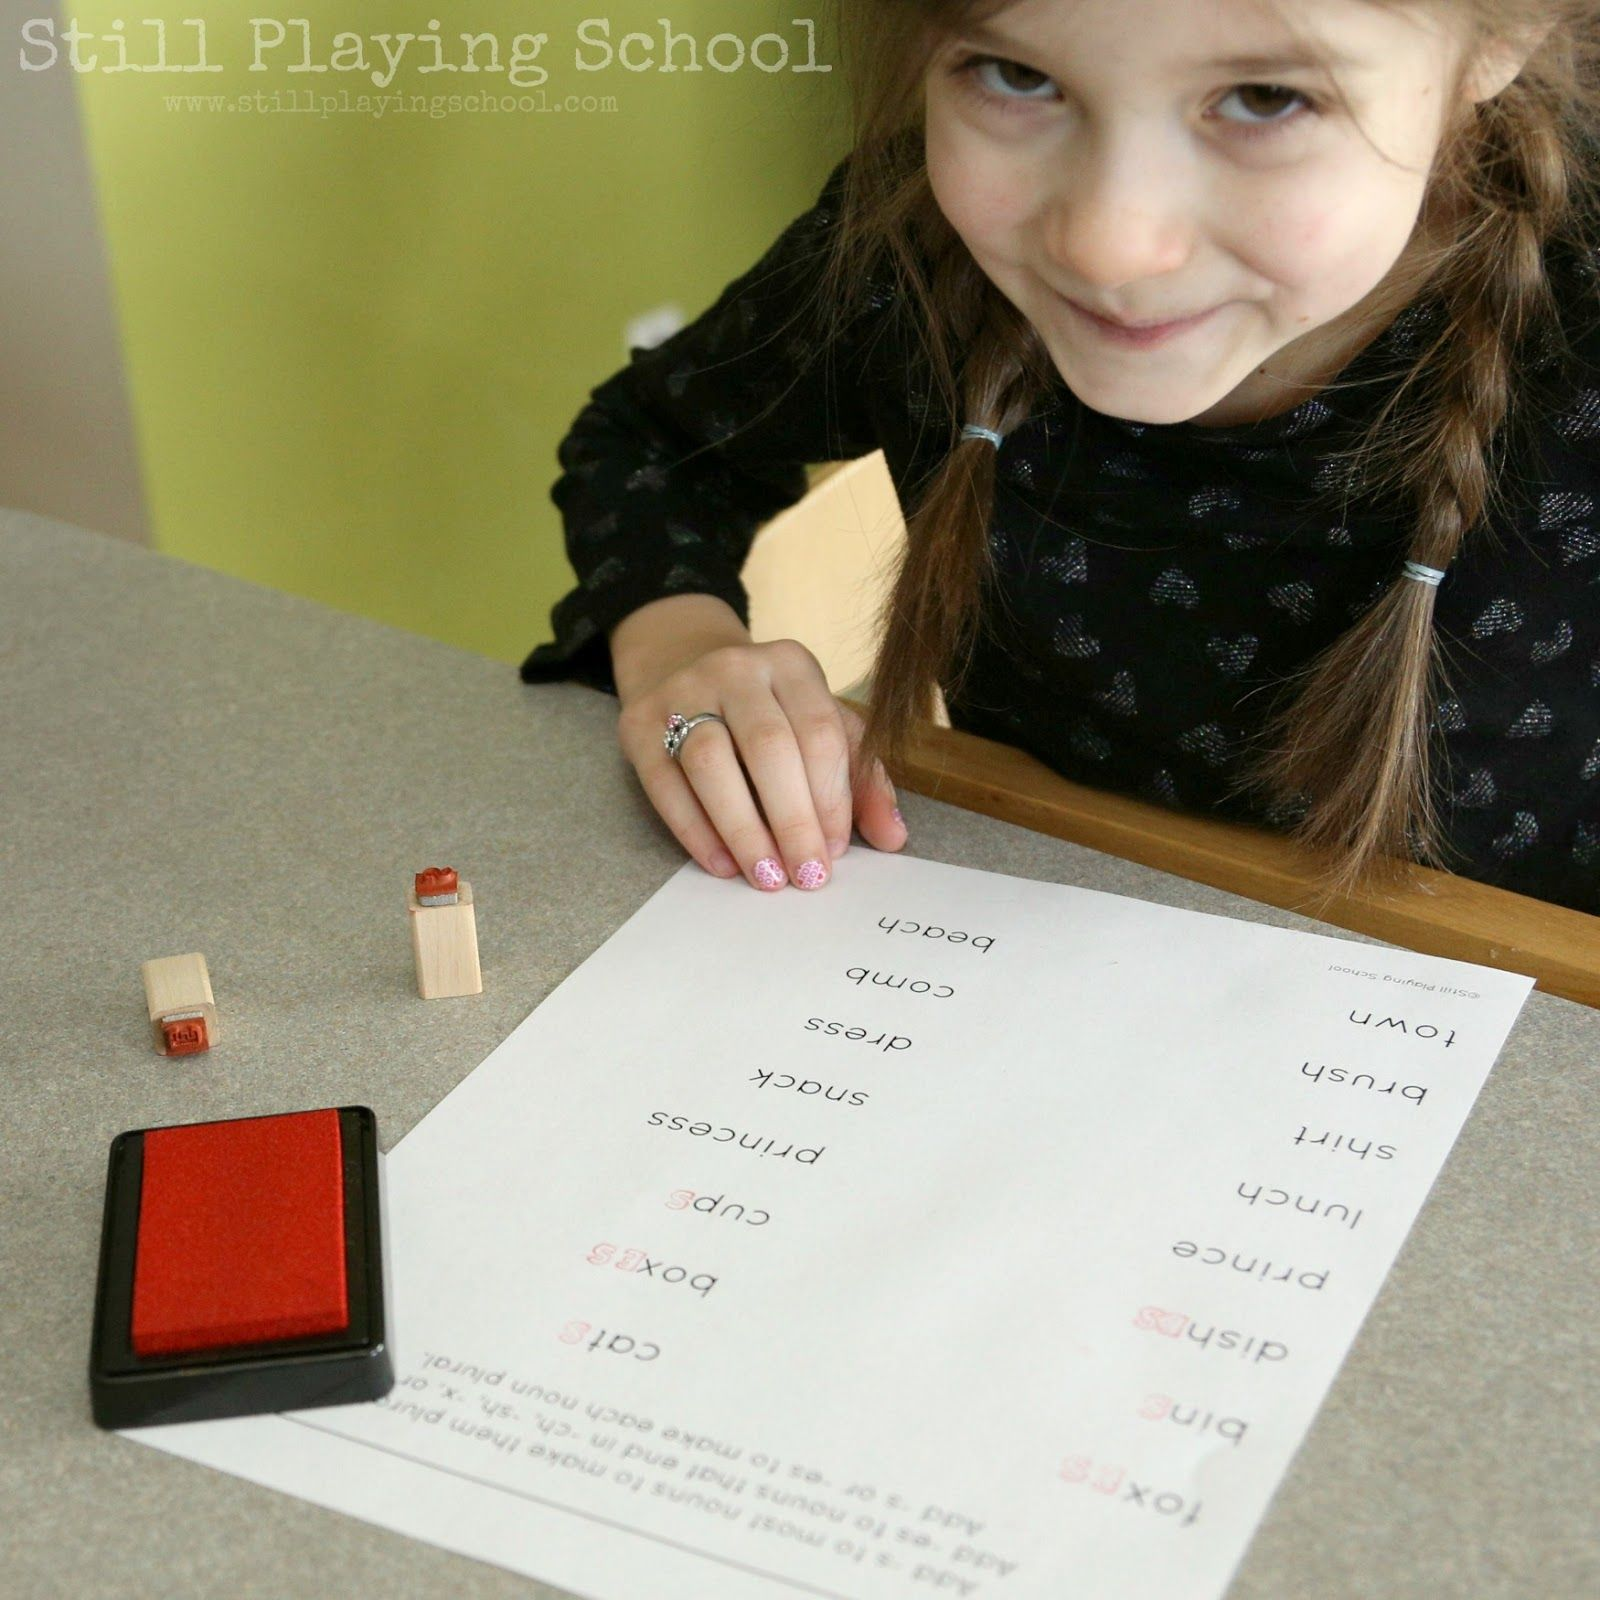 Stamping Plural Nouns With Images